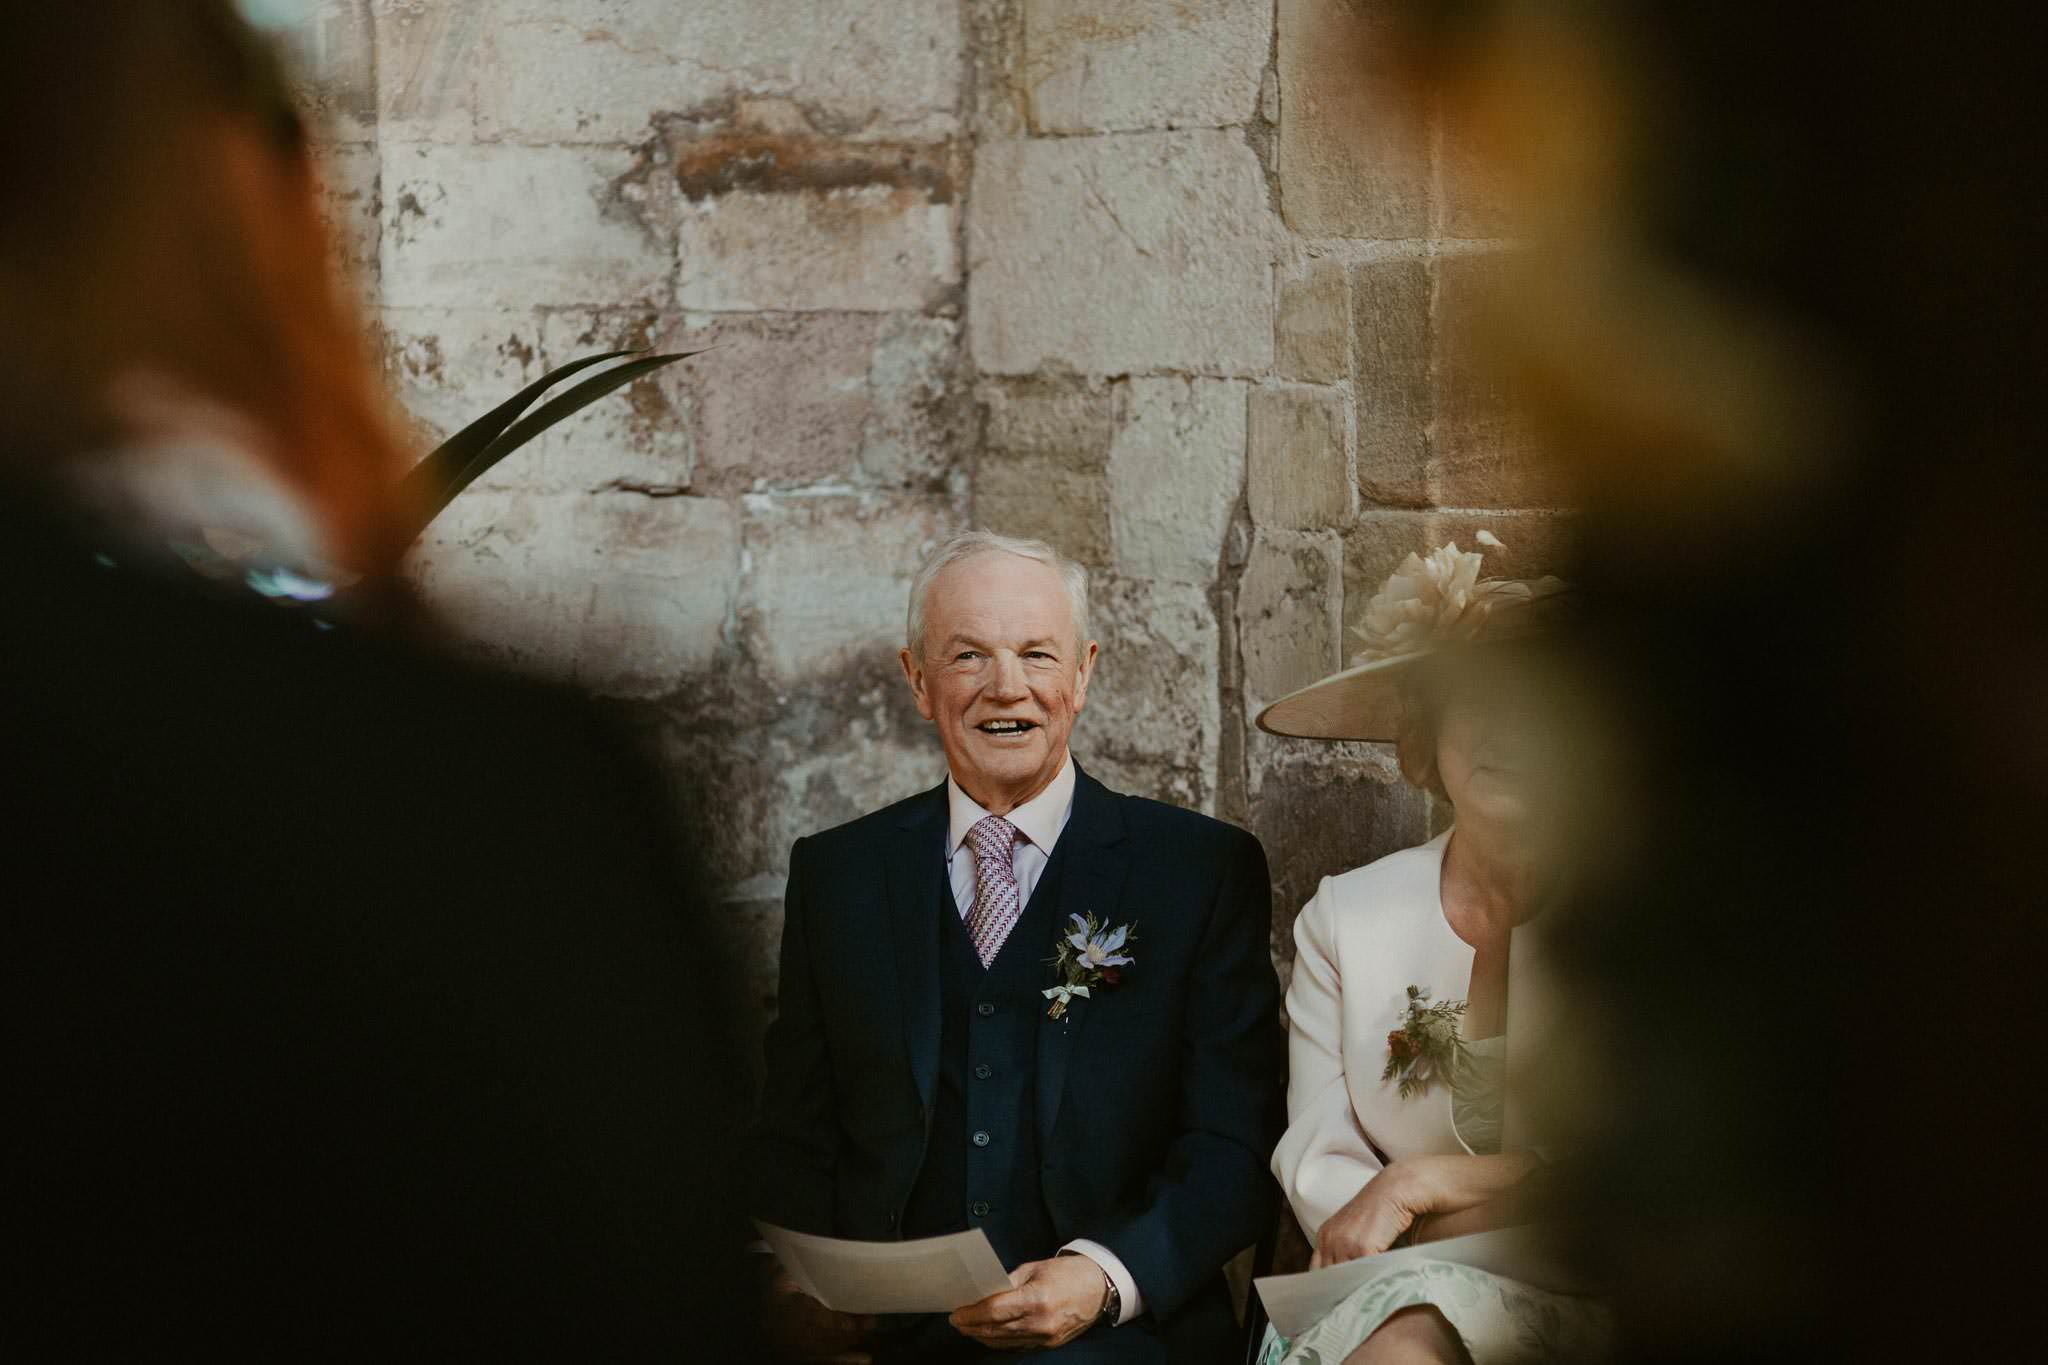 scottish-wedding-photography-059